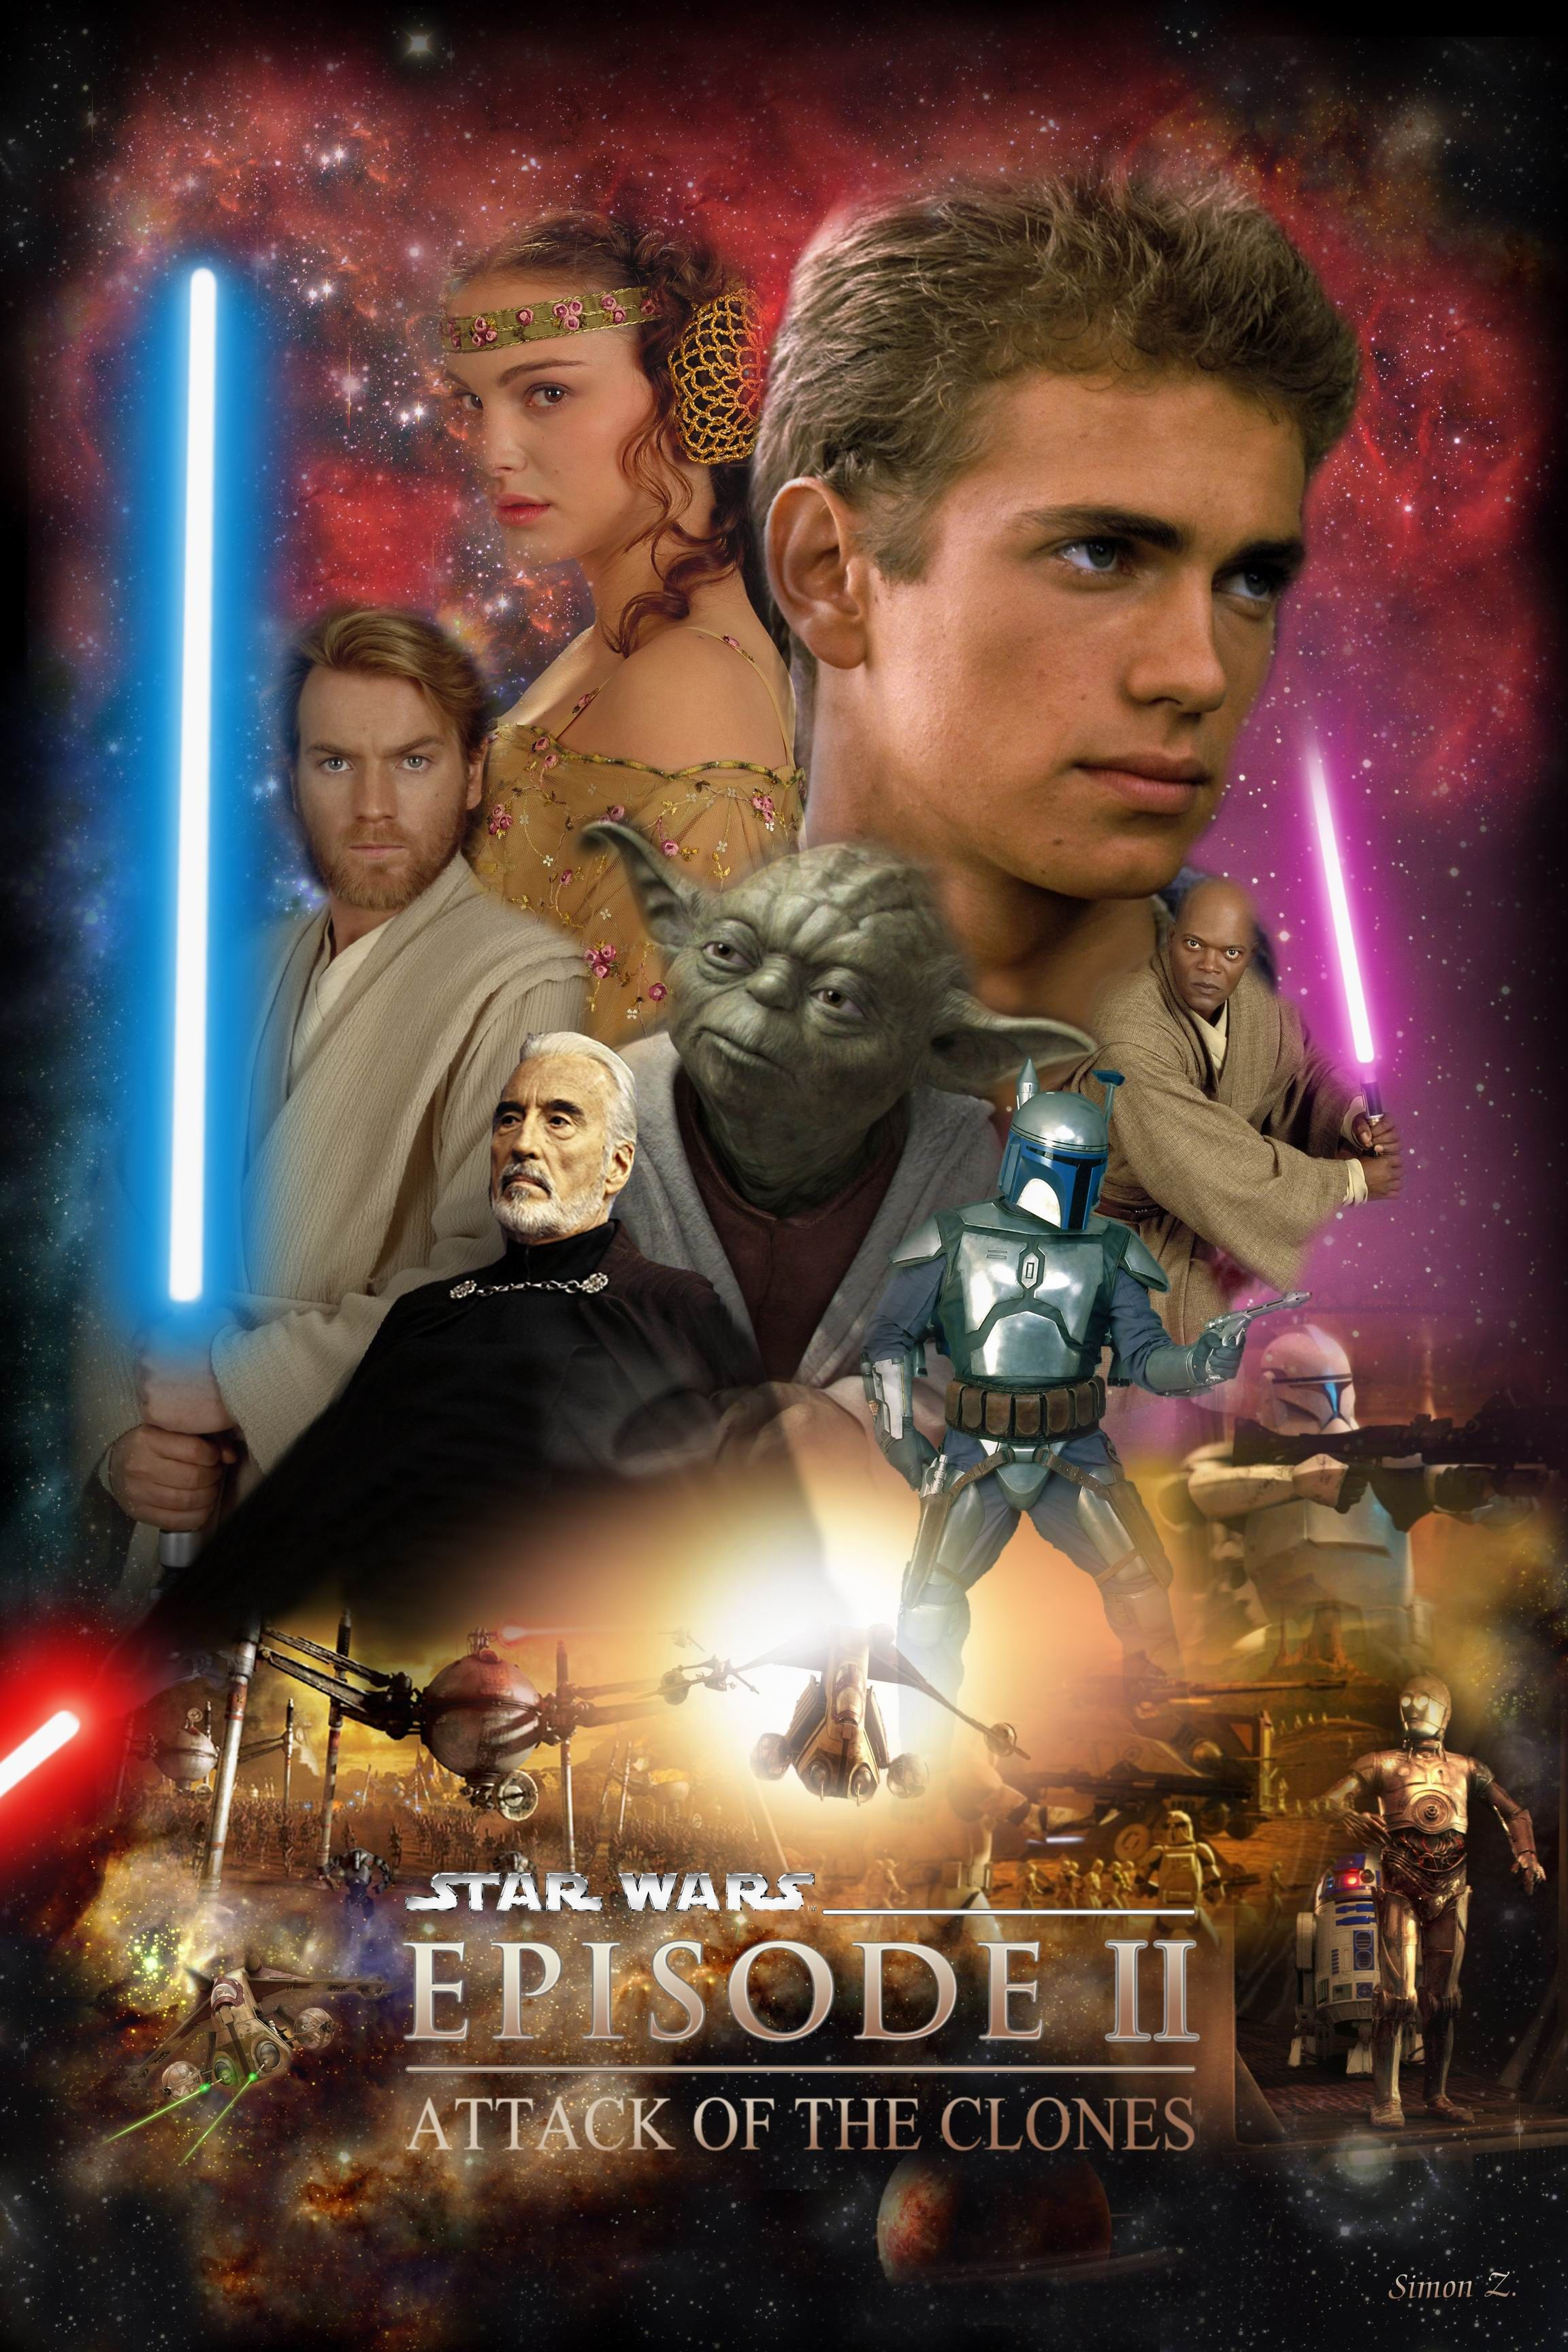 star wars episode 2 movie poster check out our review here: http